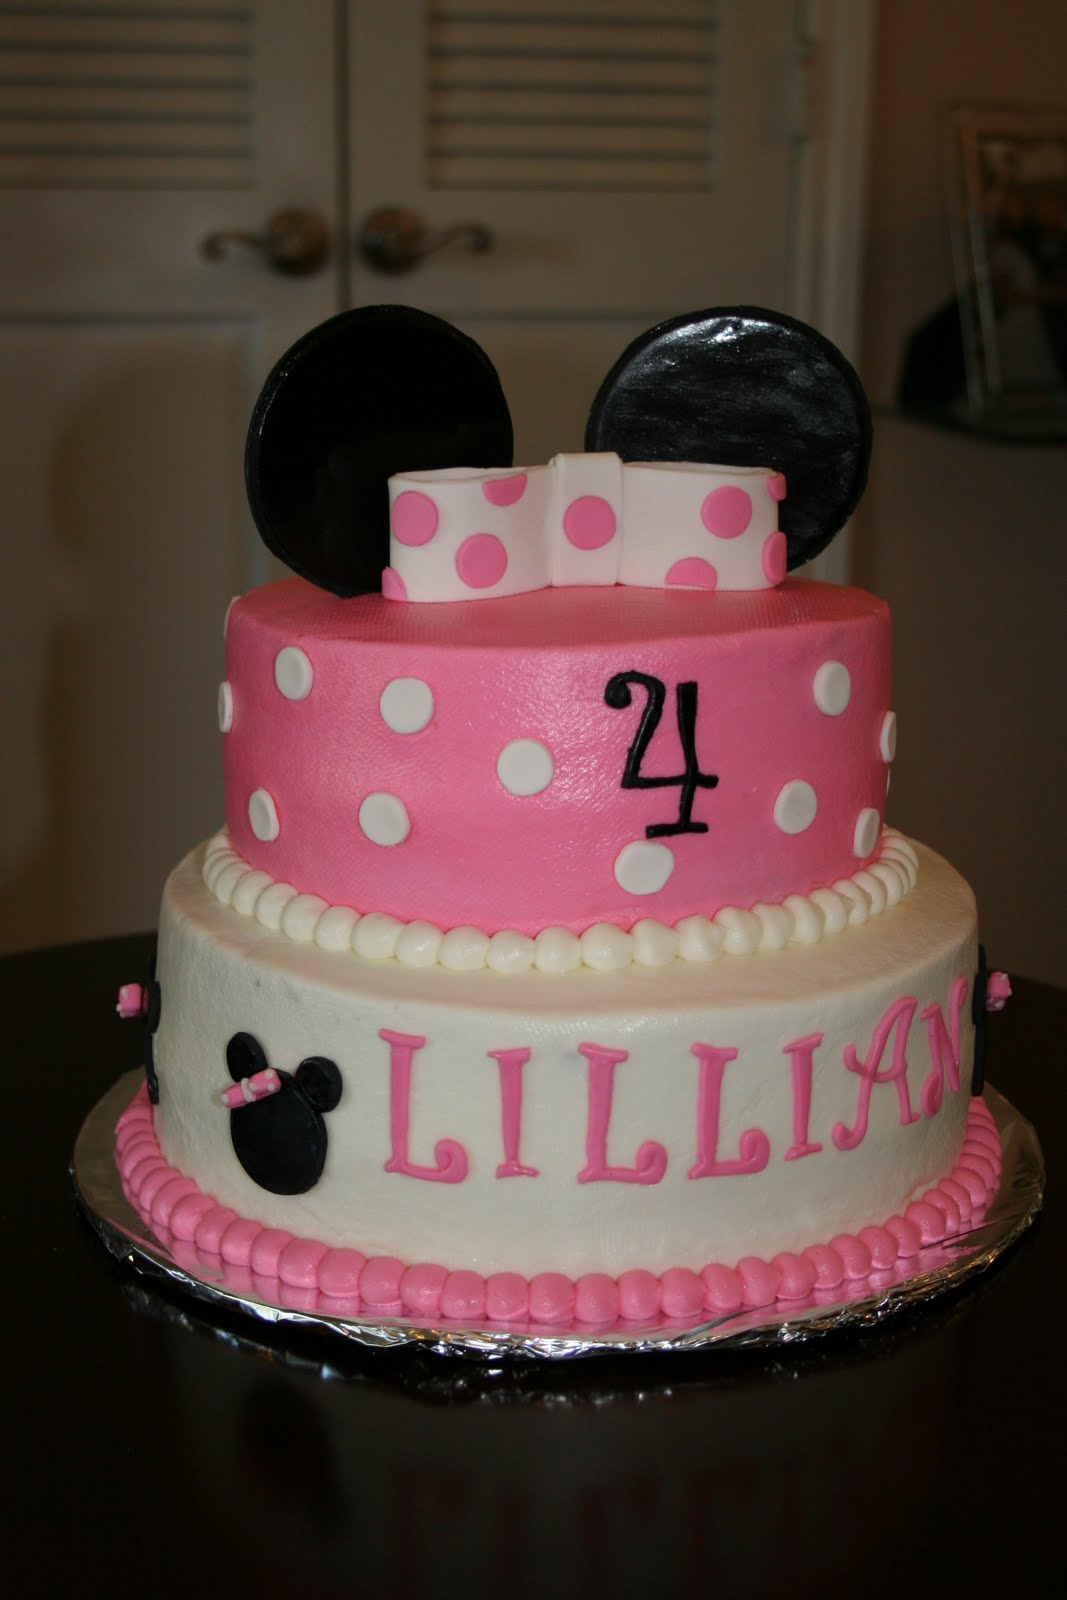 Minnie Mouse Images For Cake : Rachel s Creative Cakes: Minnie Mouse cake